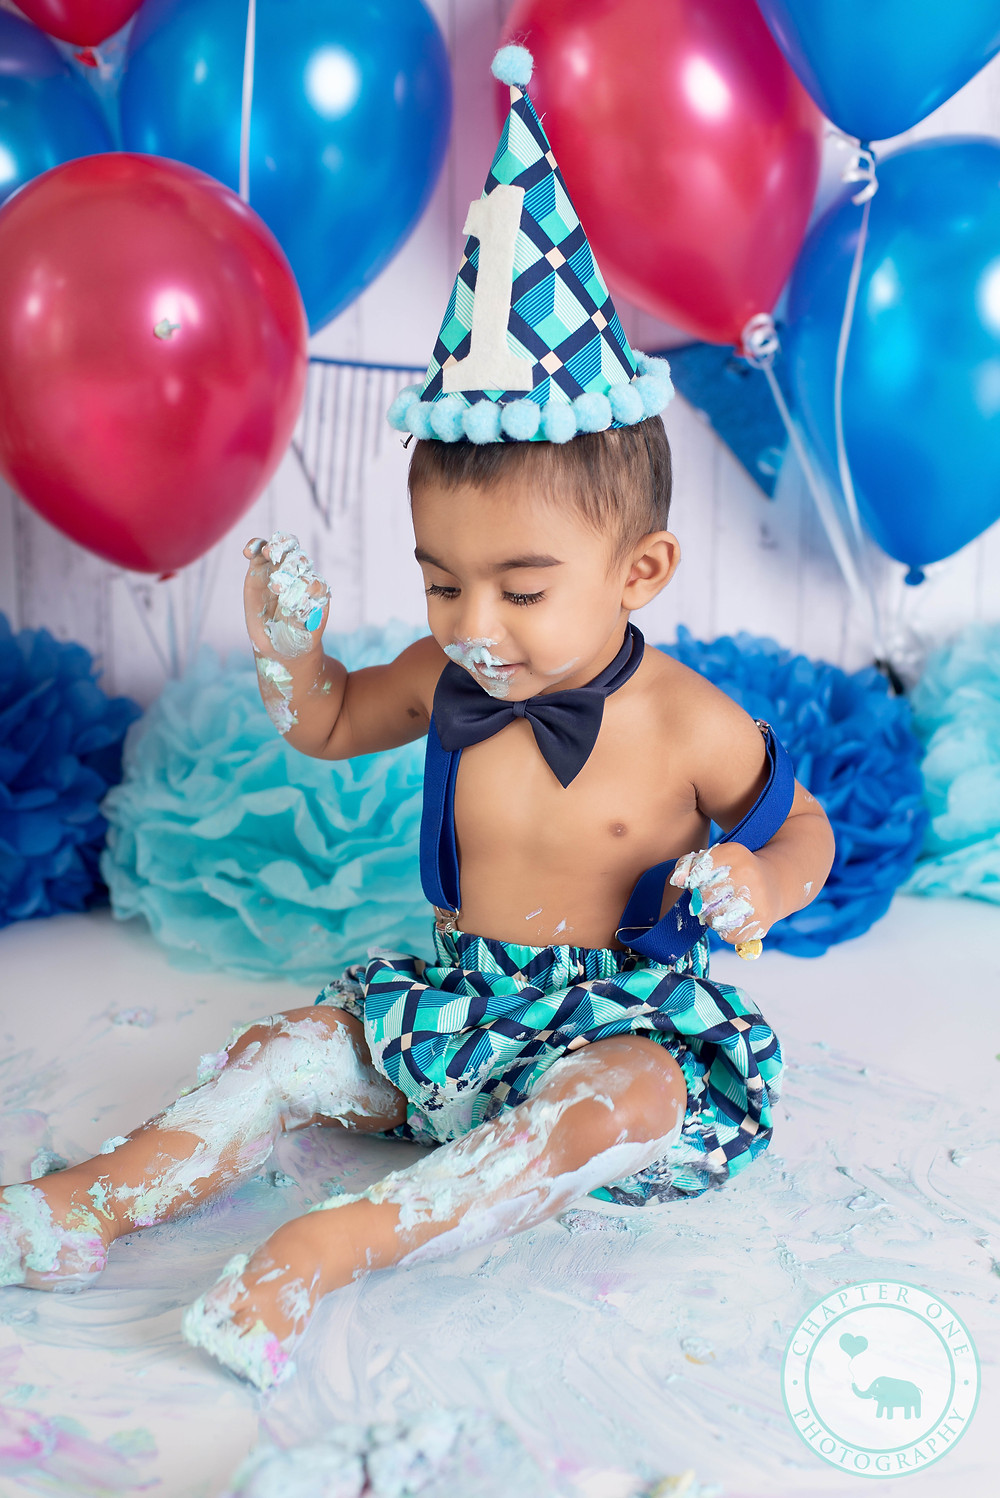 Messy Cake Smash photography for baby boy